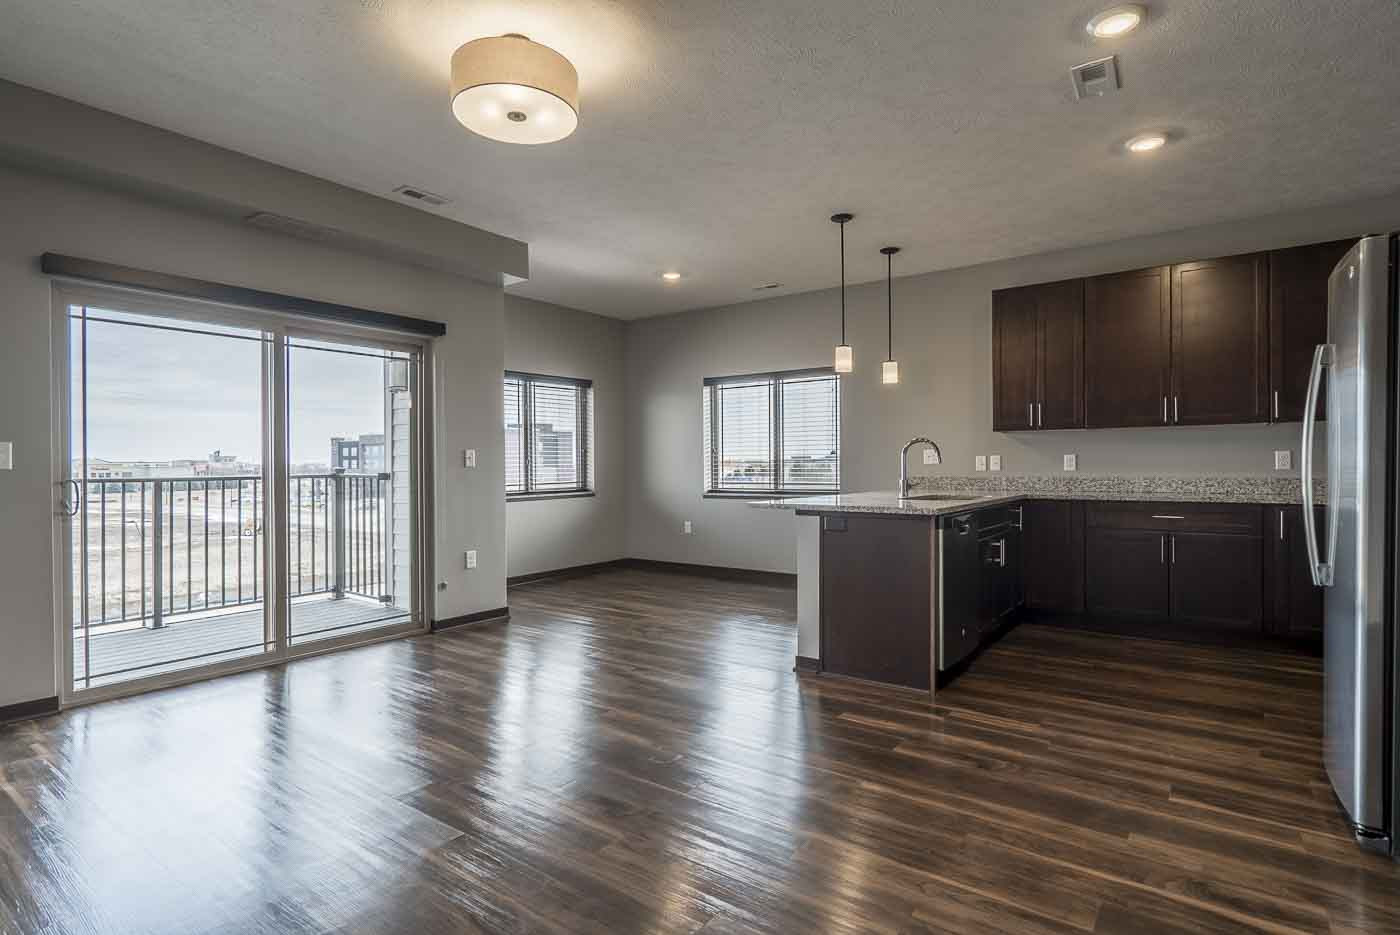 Hardwood Floor Refinishing Des Moines Of Studio One Two Three Bedroom Apartments Rent 360 at Jordan West Regarding Picasso C3 Floor Plan 360 at Jordan West New Luxury Apartments In Des Moines